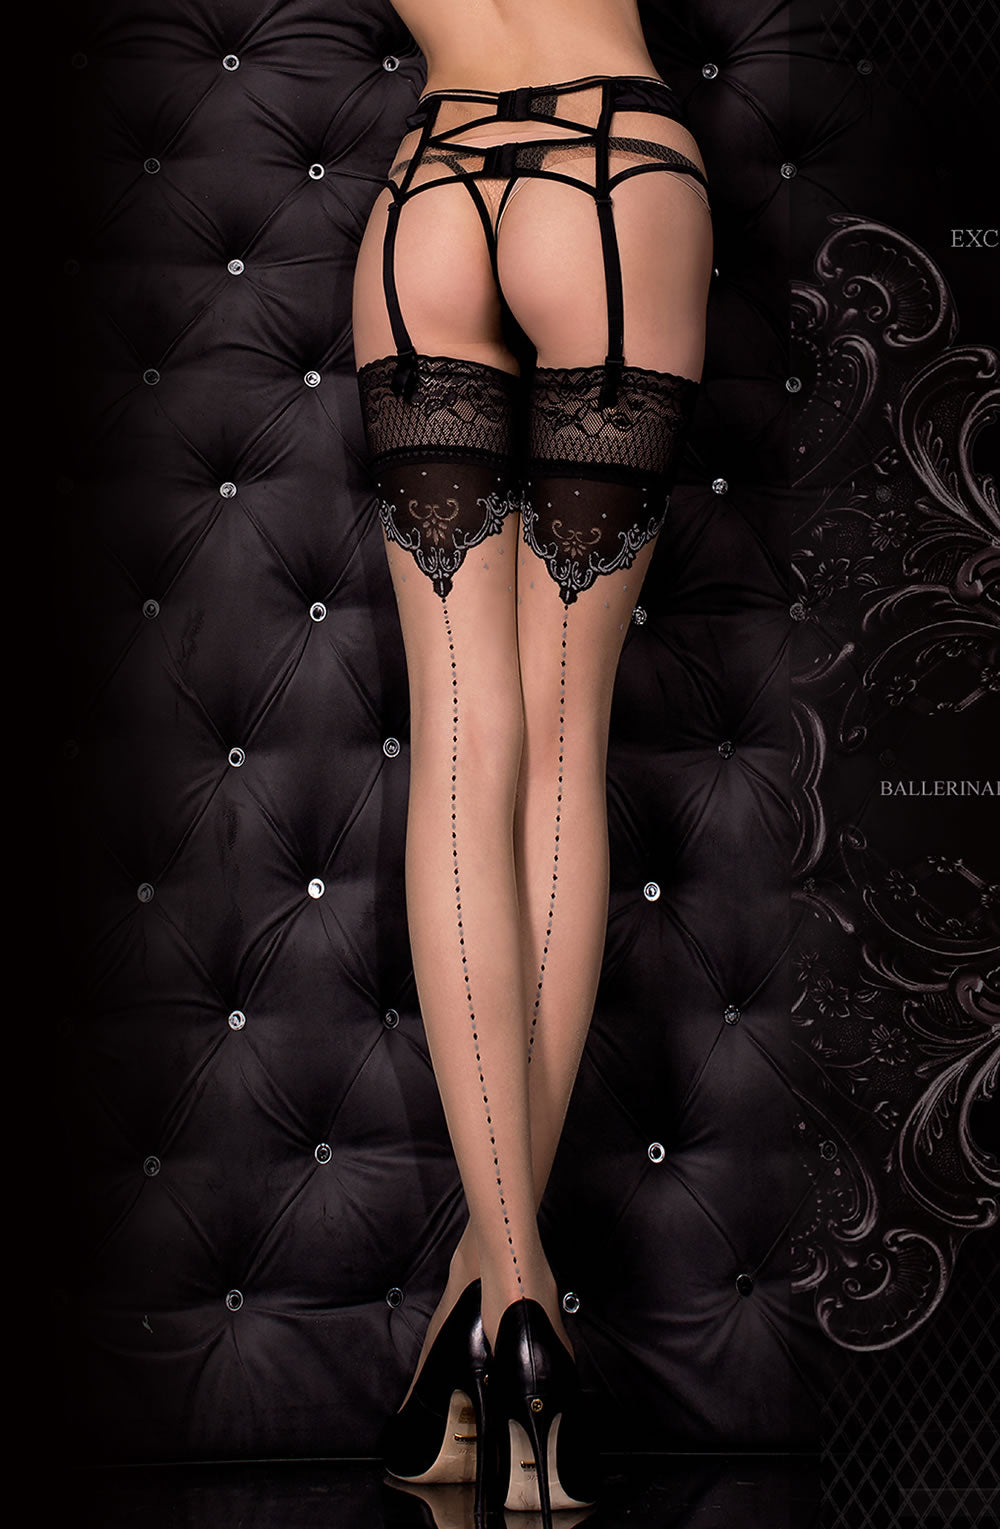 317 Hold Ups in Nero Black/Skin by Ballerina